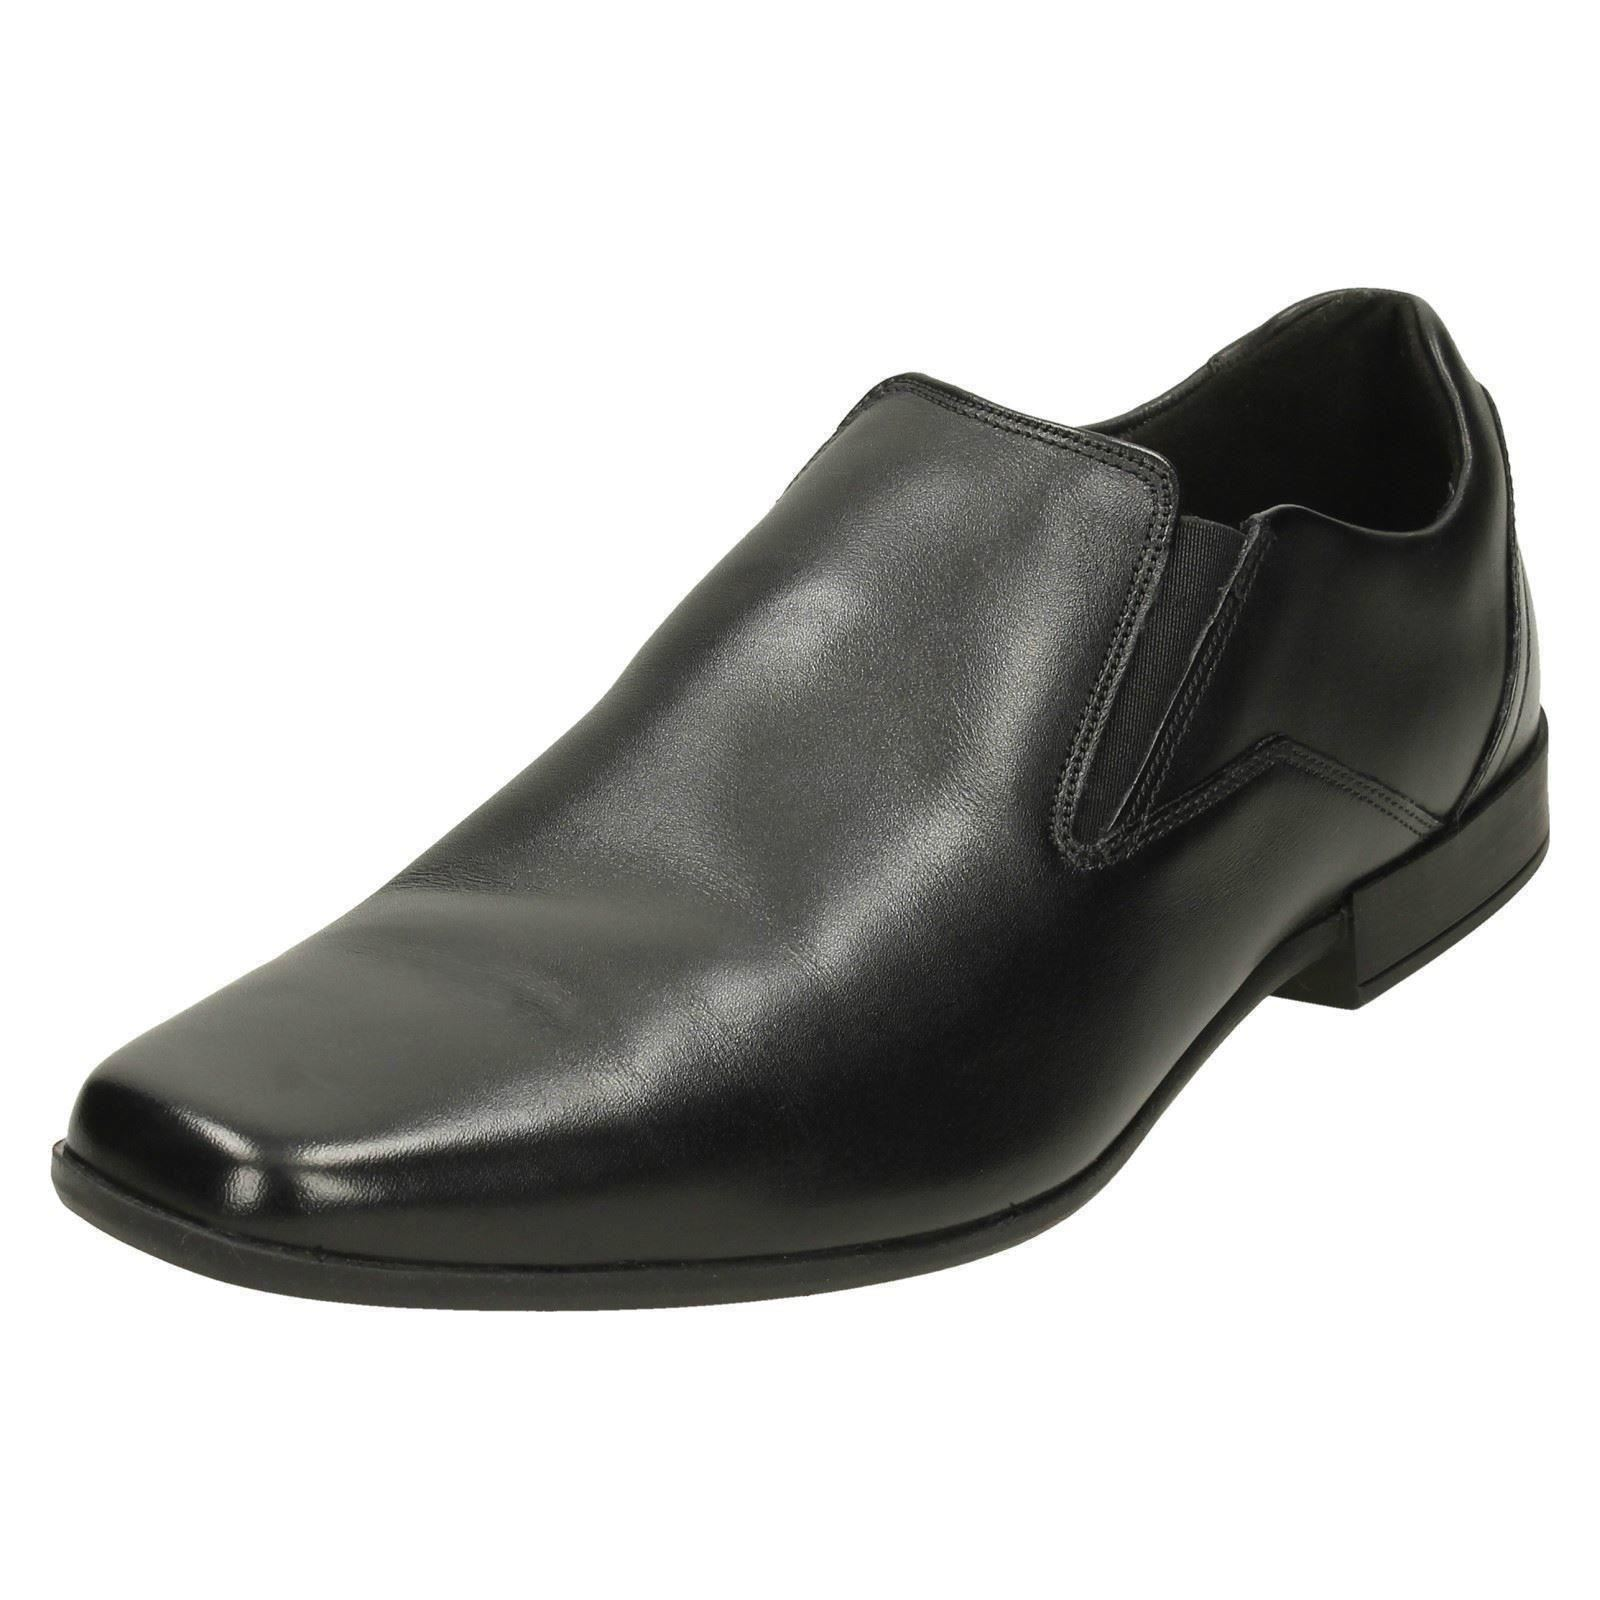 Mens-Clarks-Formal-Squared-Toe-Slip-On-Leather-Shoes-Glement-Slip